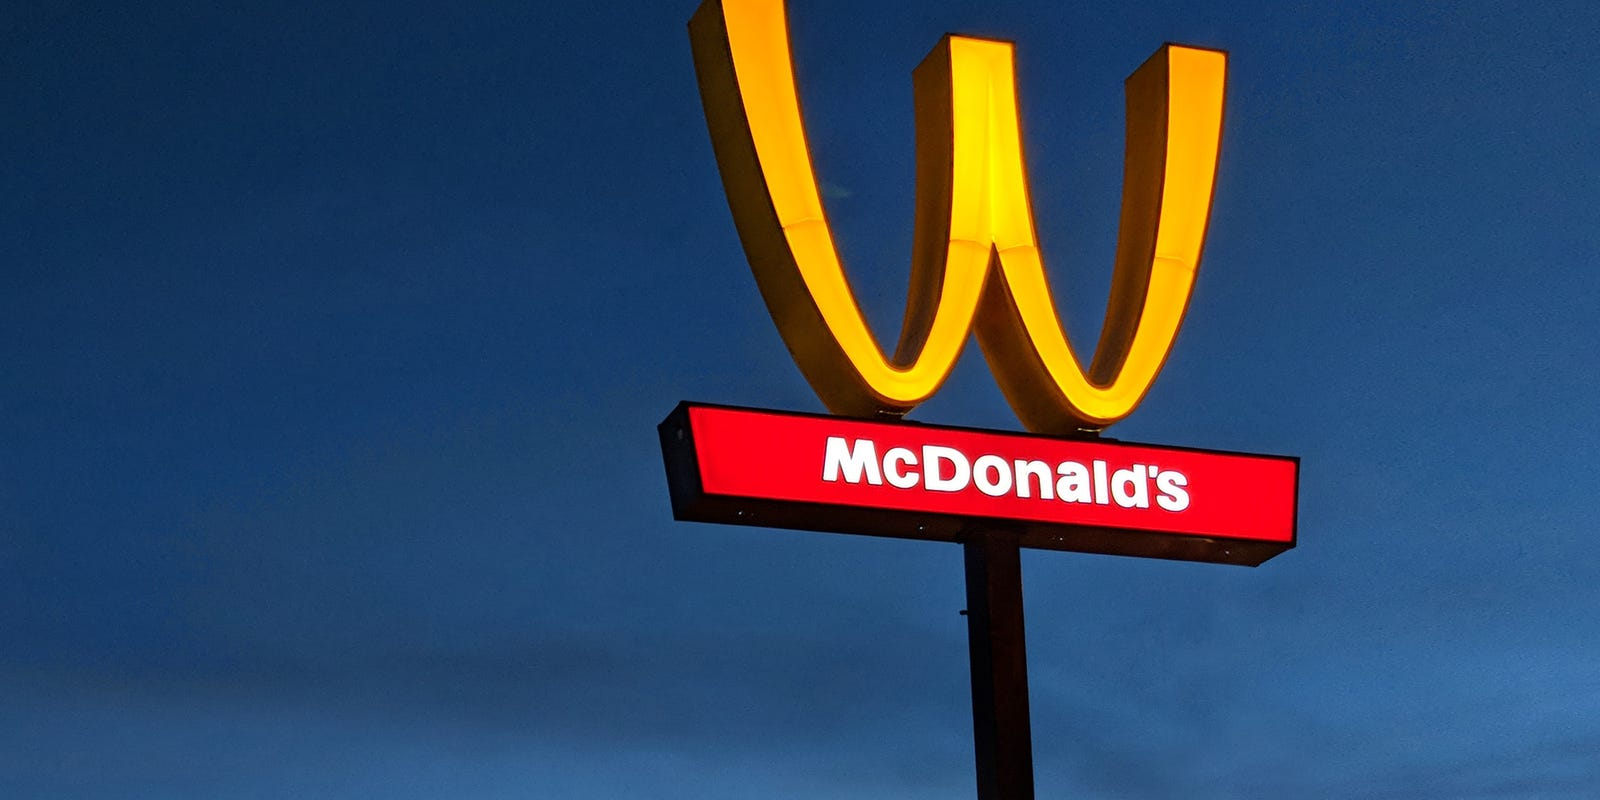 you re not imagining it the mcdonald s logo is upside down